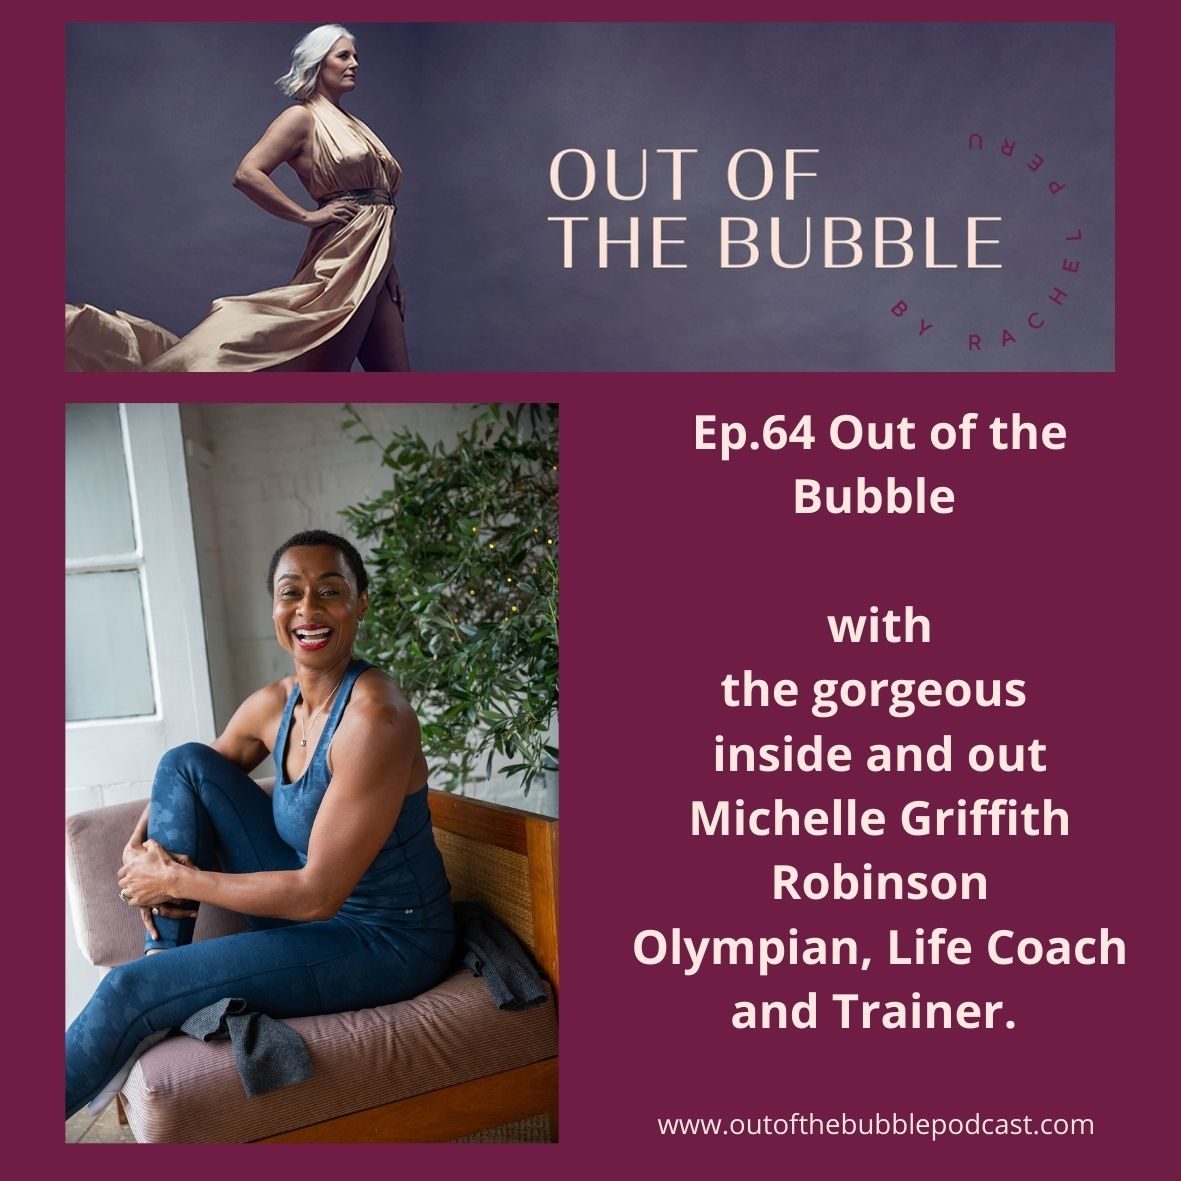 Ep.64-Out of the Bubble with Olympian, life coach and mentor Michelle Griffith Robinson